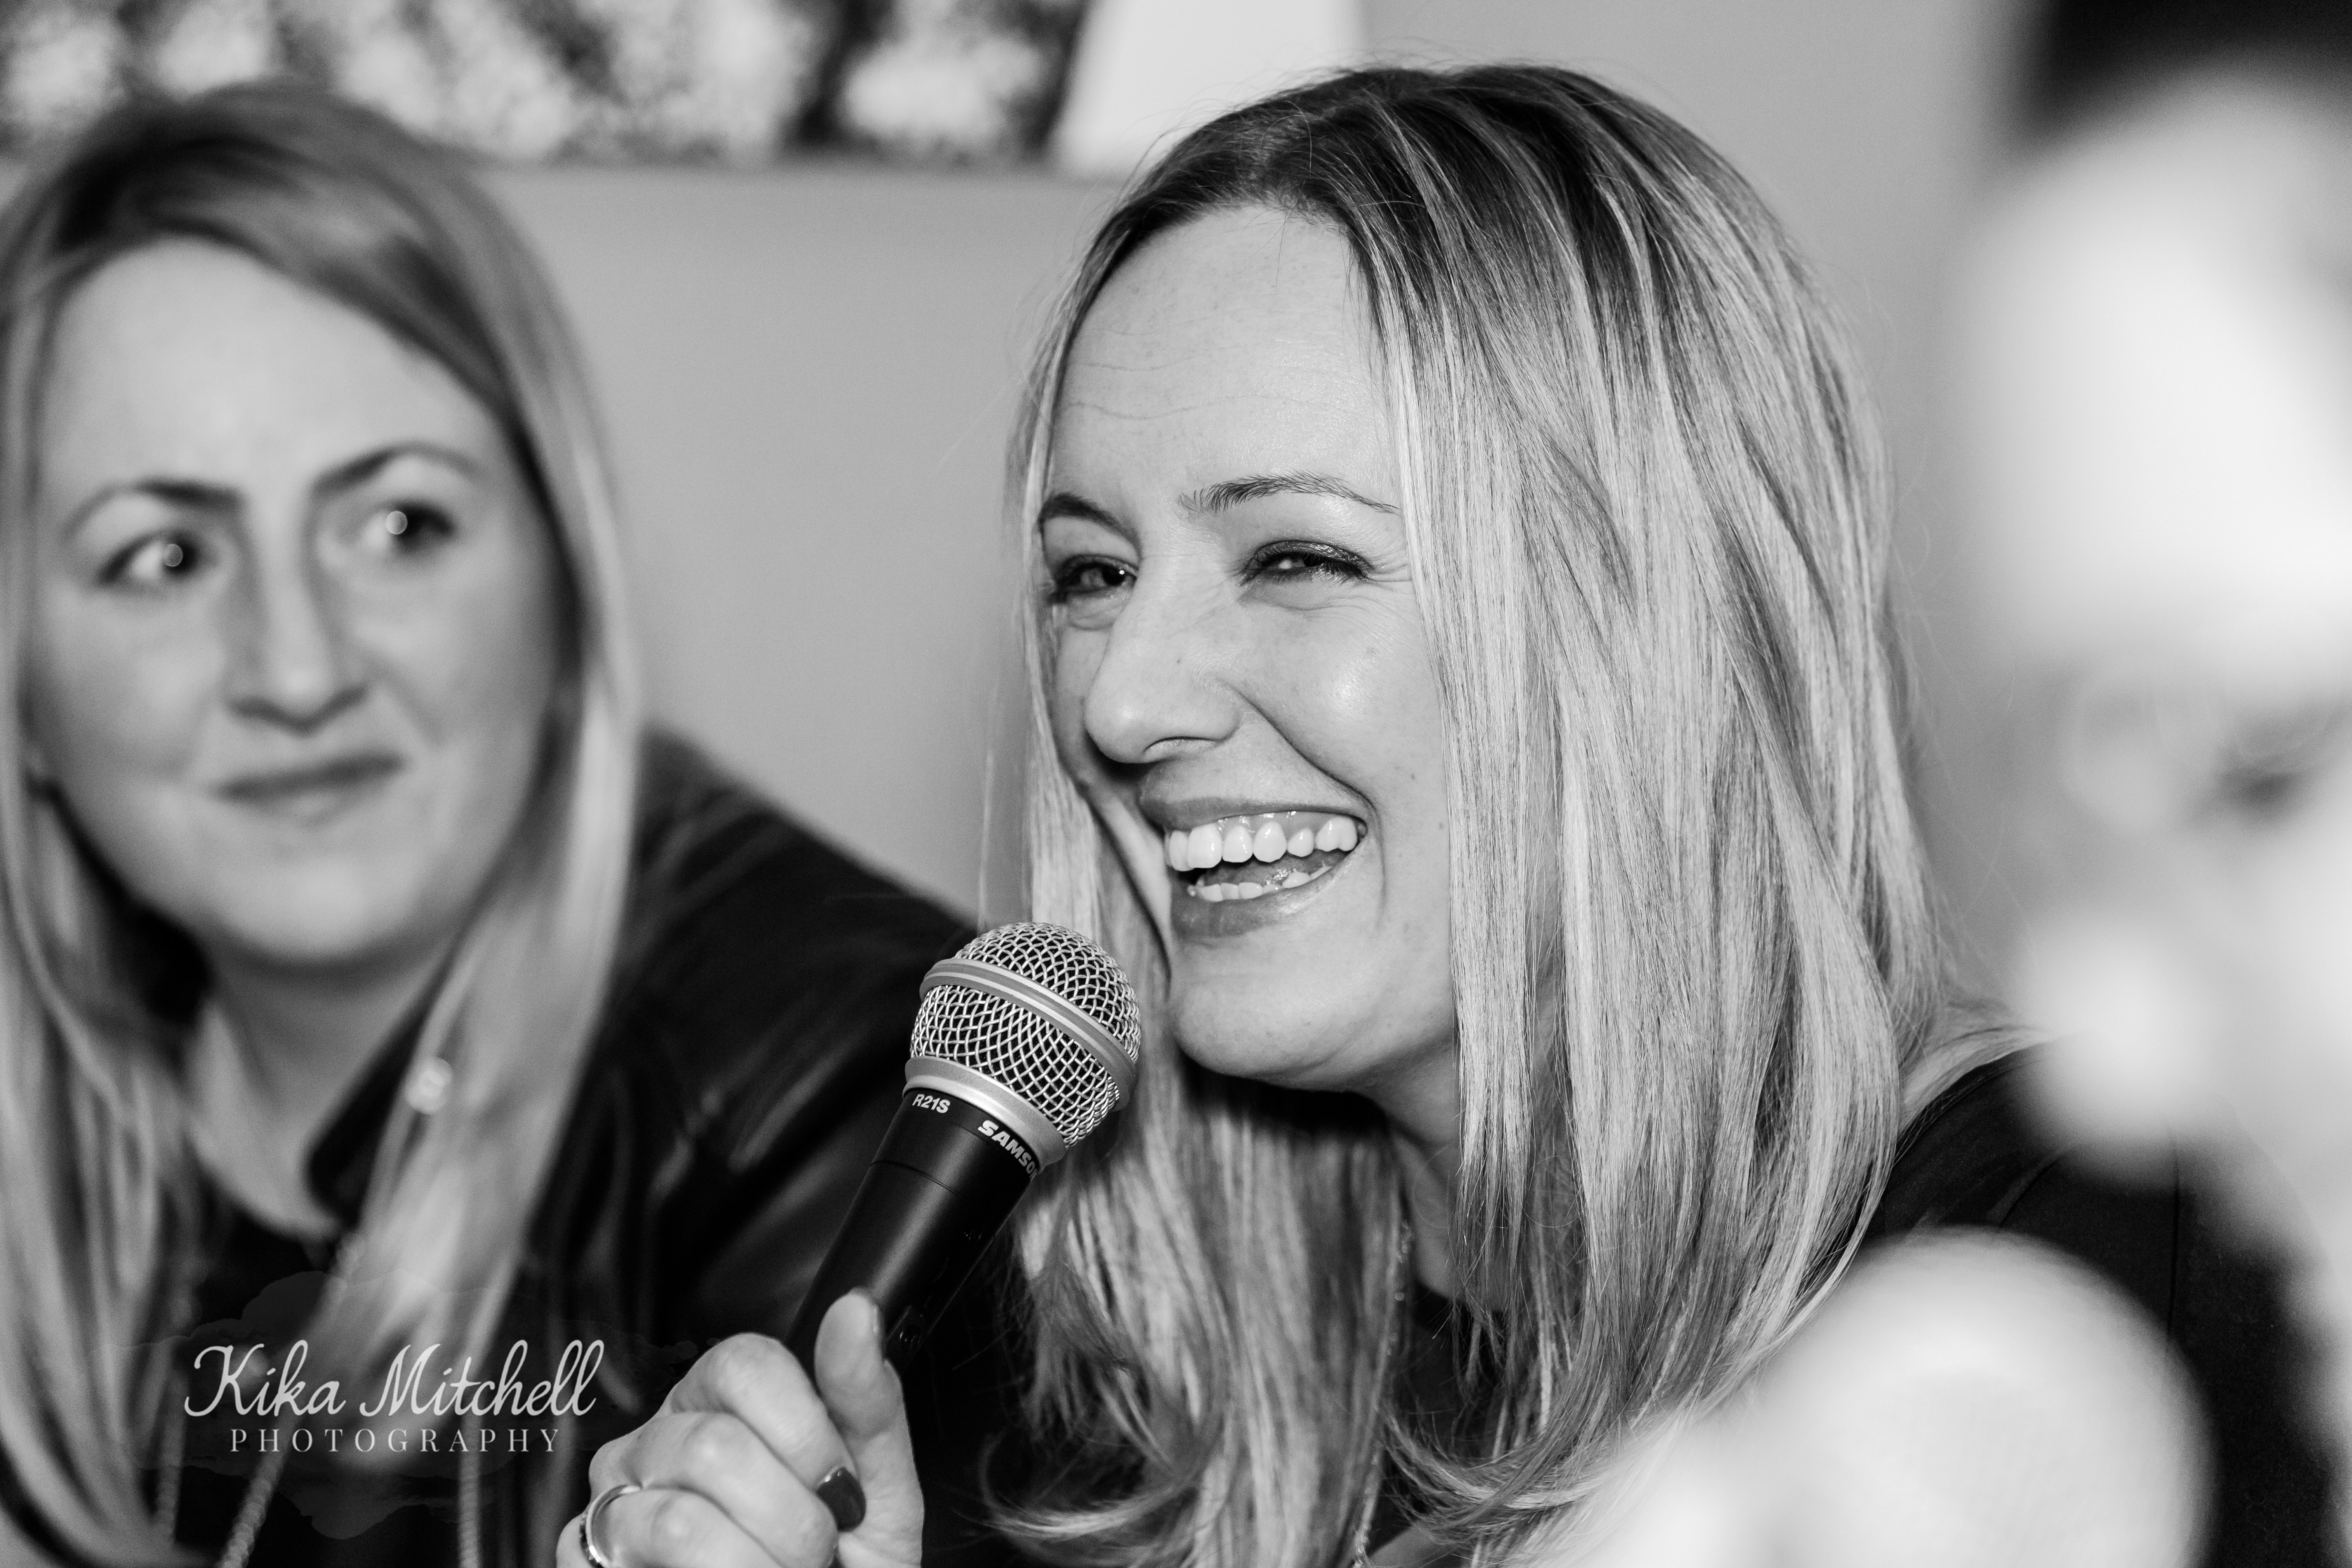 Kika Mitchell Chelmsford Photographer Jess Clarke Mother Hub Mingle panel Kika Mitchell Photography